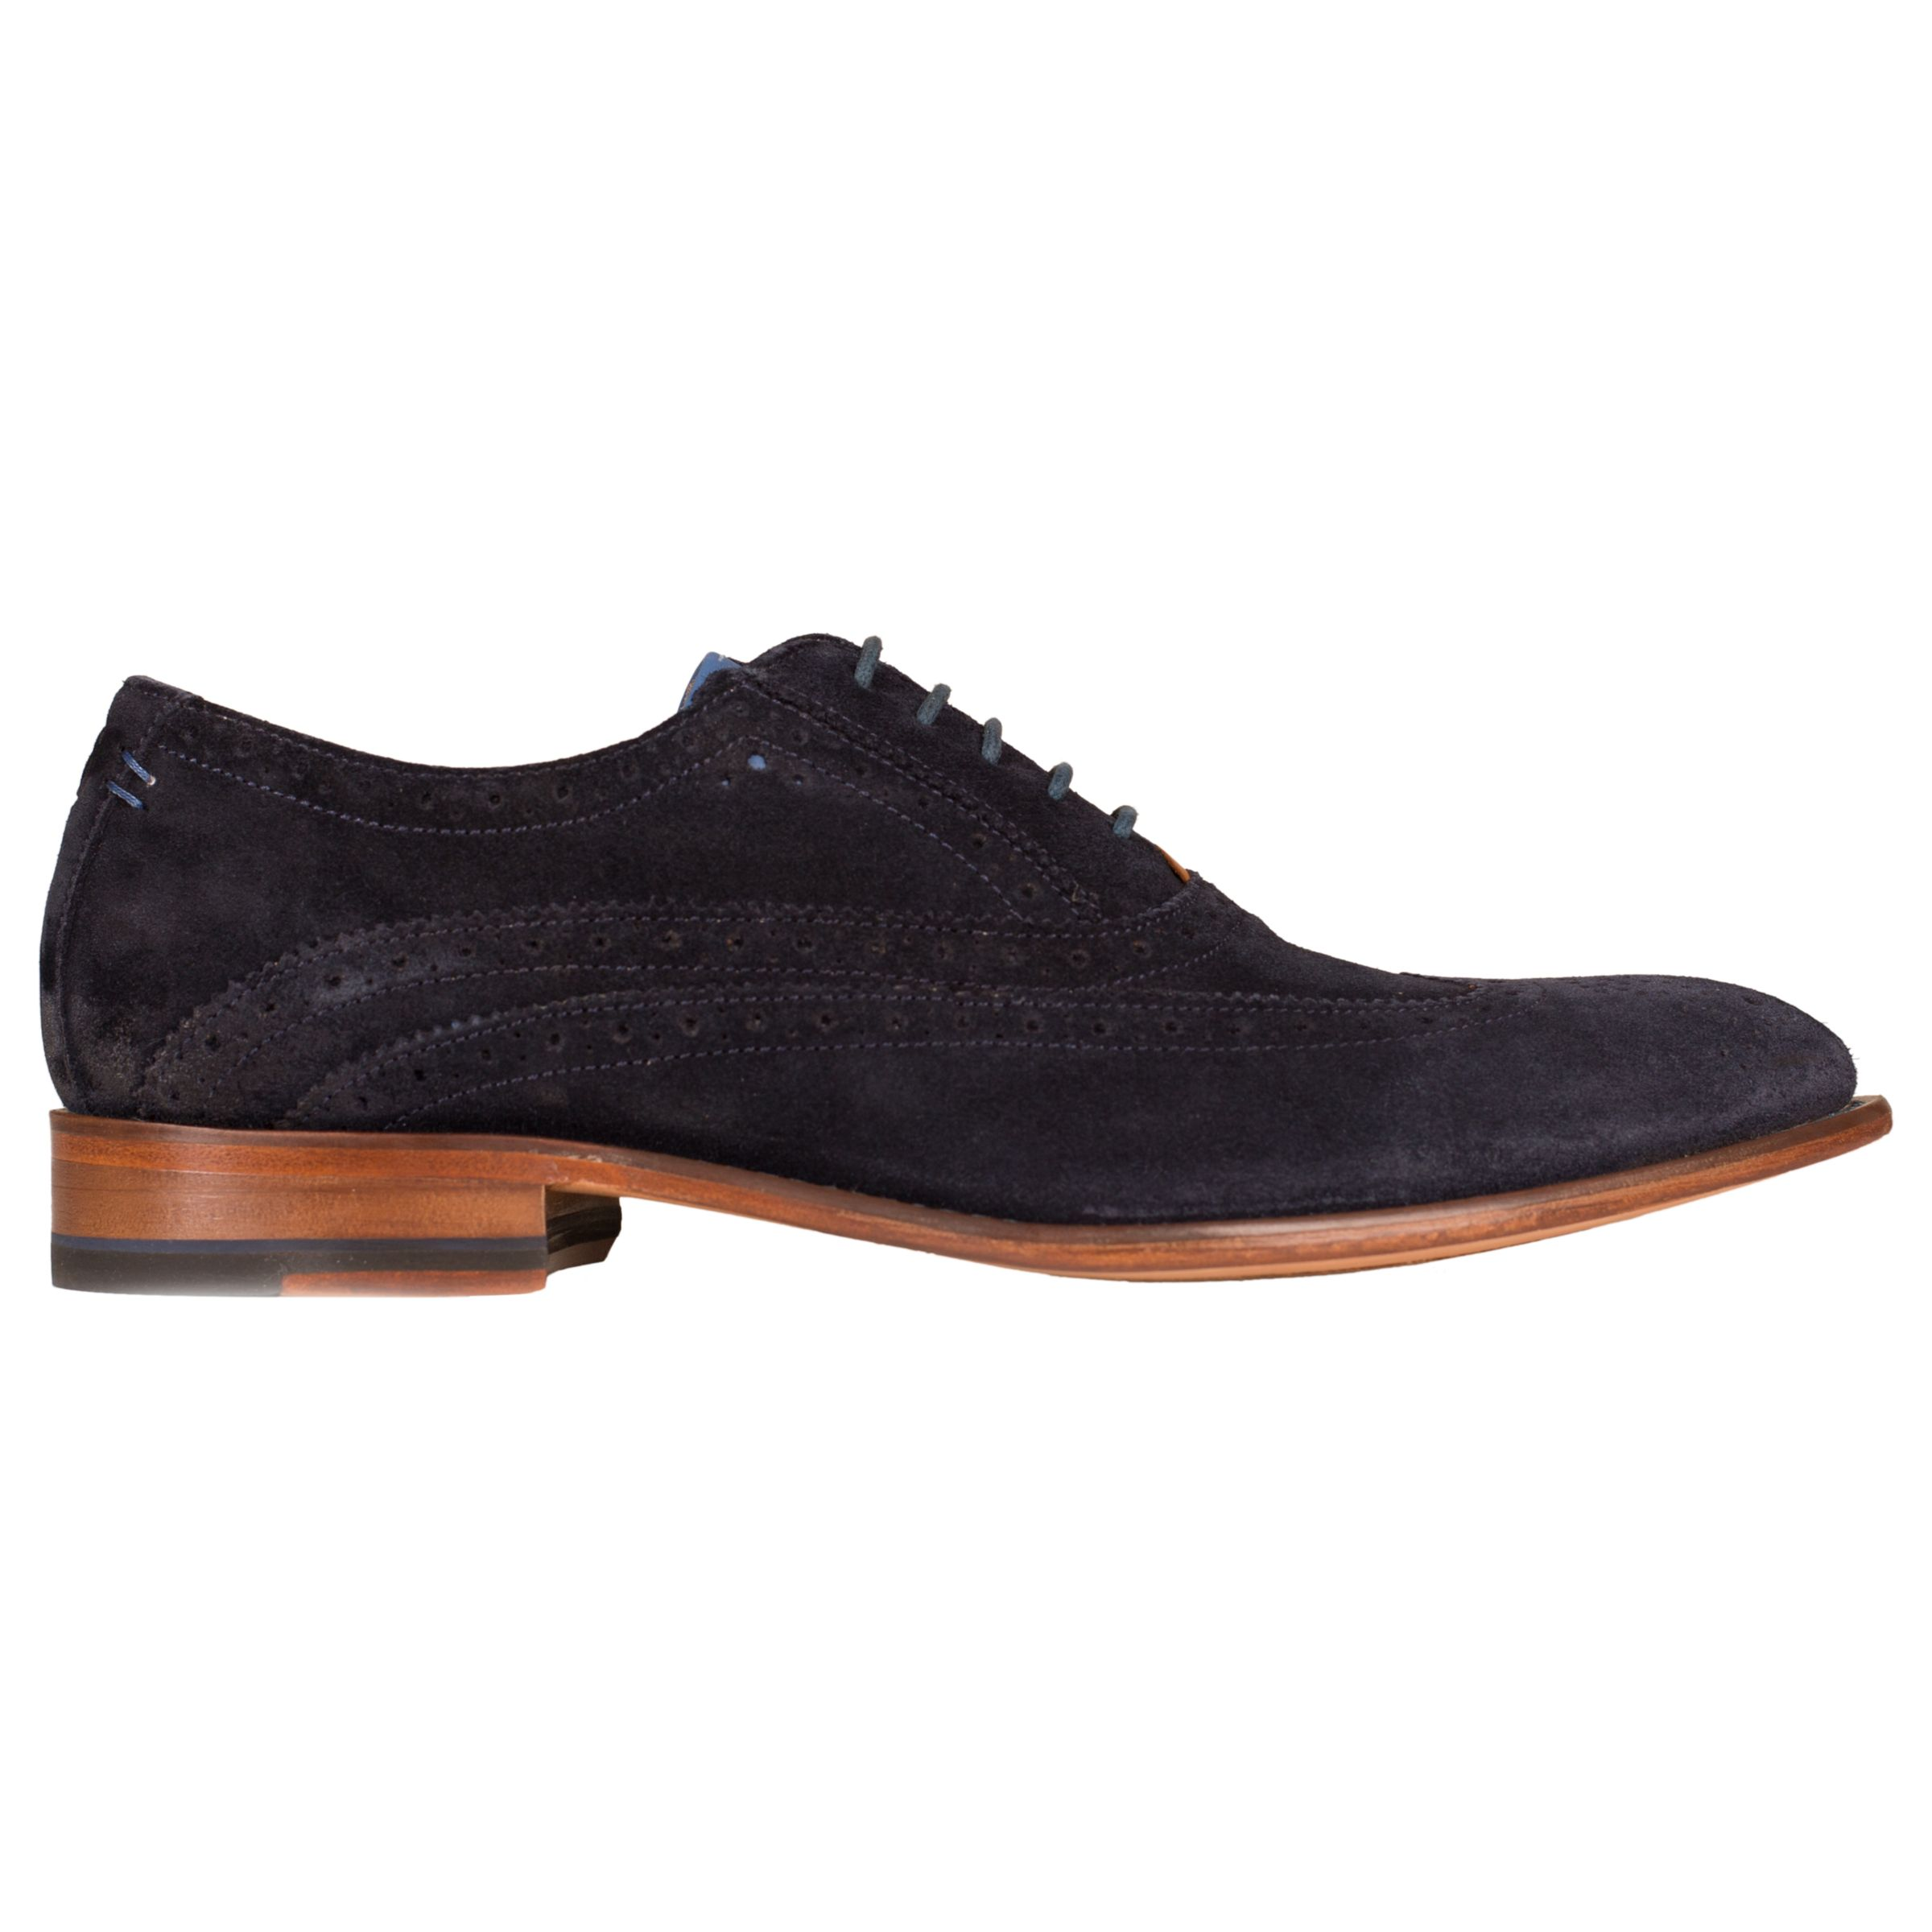 Oliver Sweeney Oliver Sweeney Fellbeck Leather Lace-Up Brogues, Blue